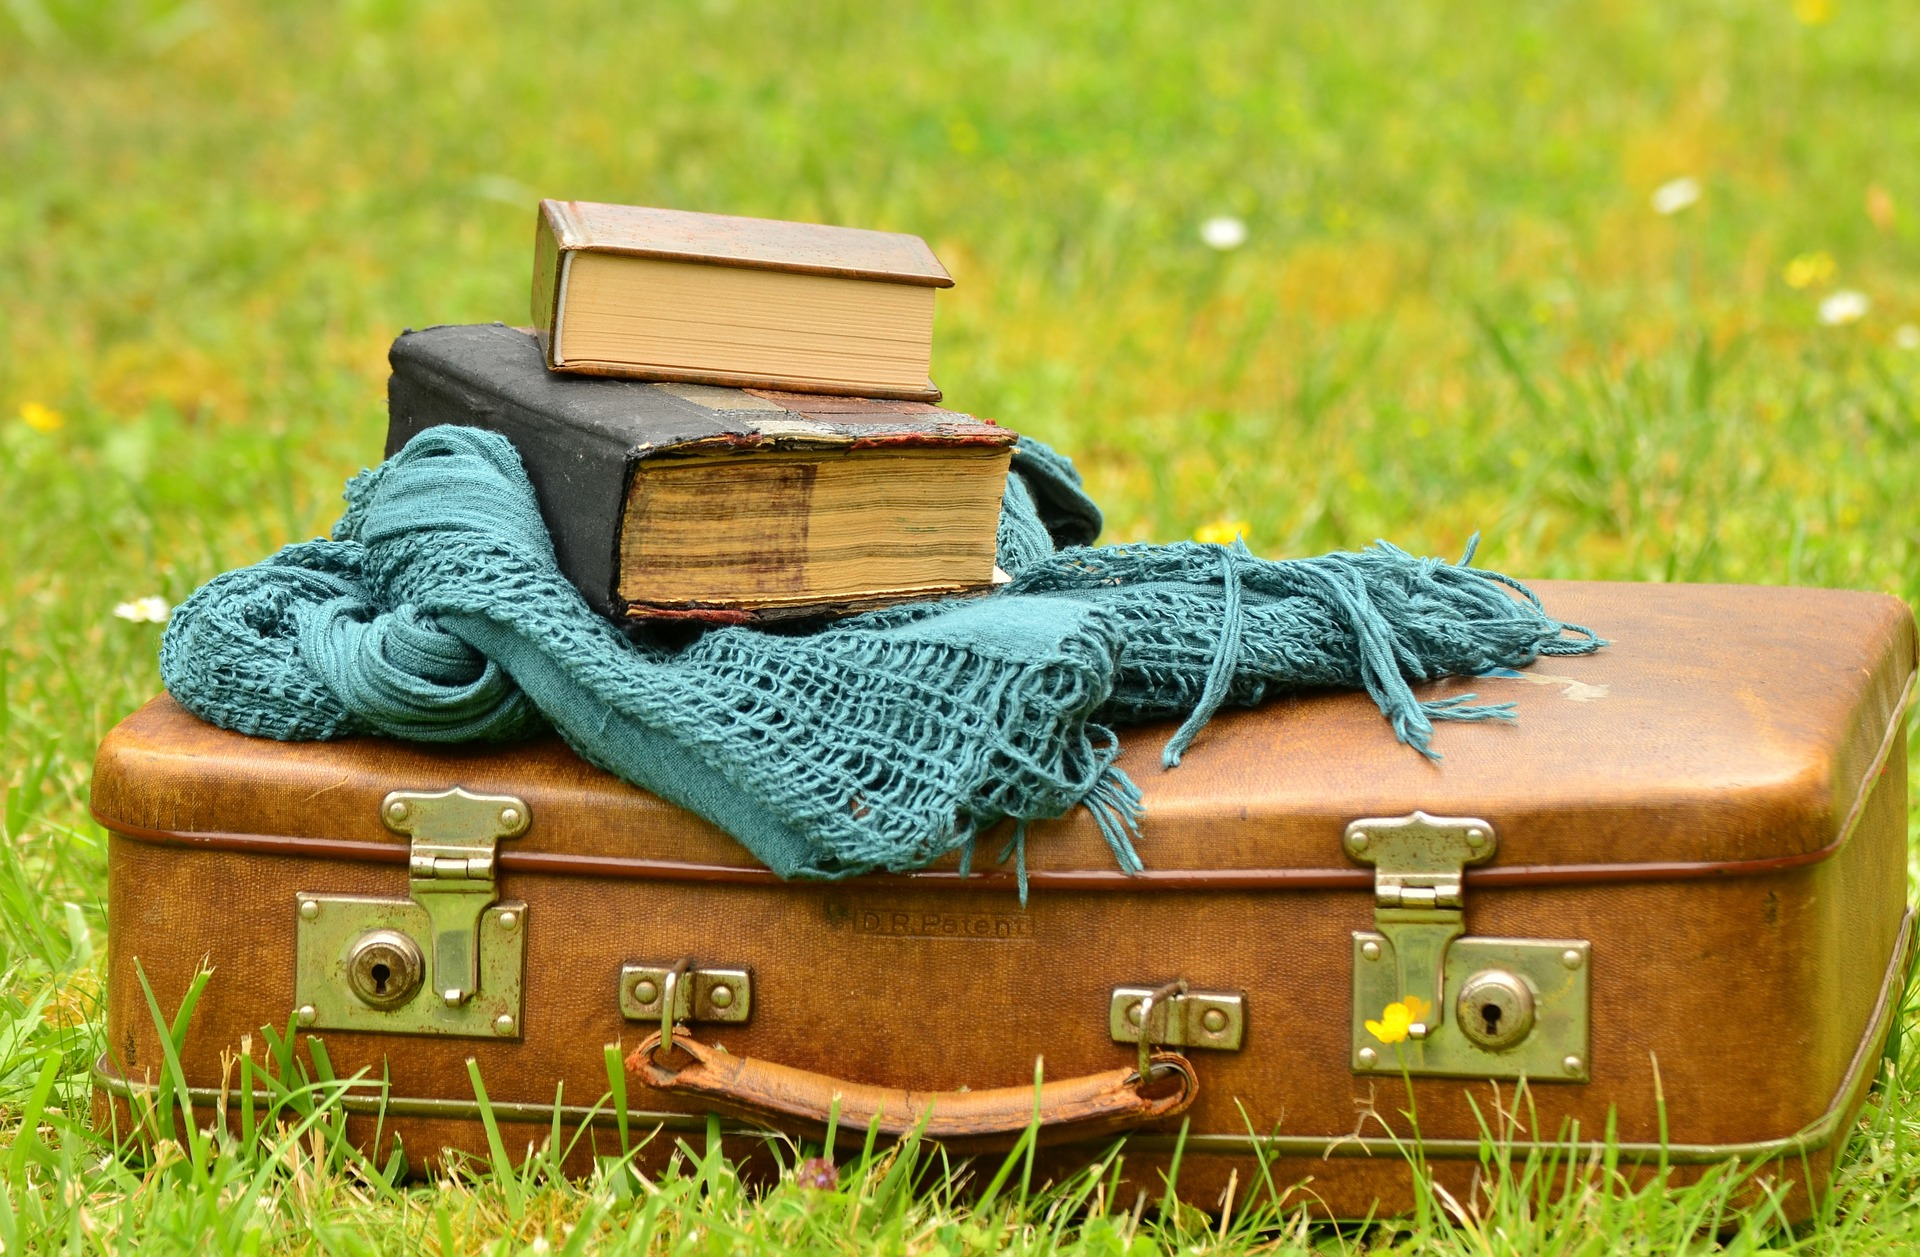 Traveling while widowed